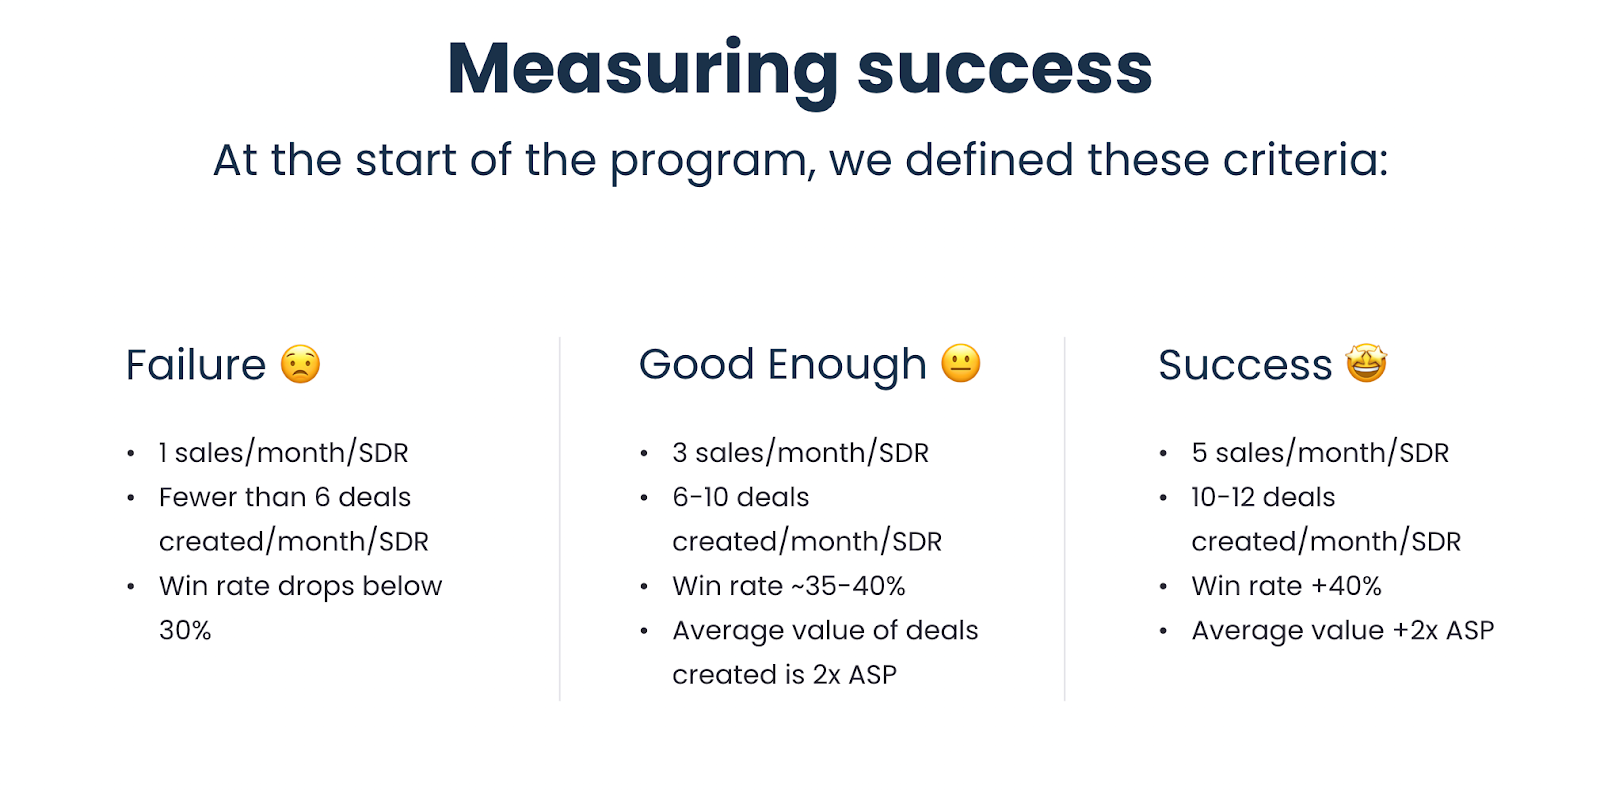 Success criteria for our outbound sales strategy.